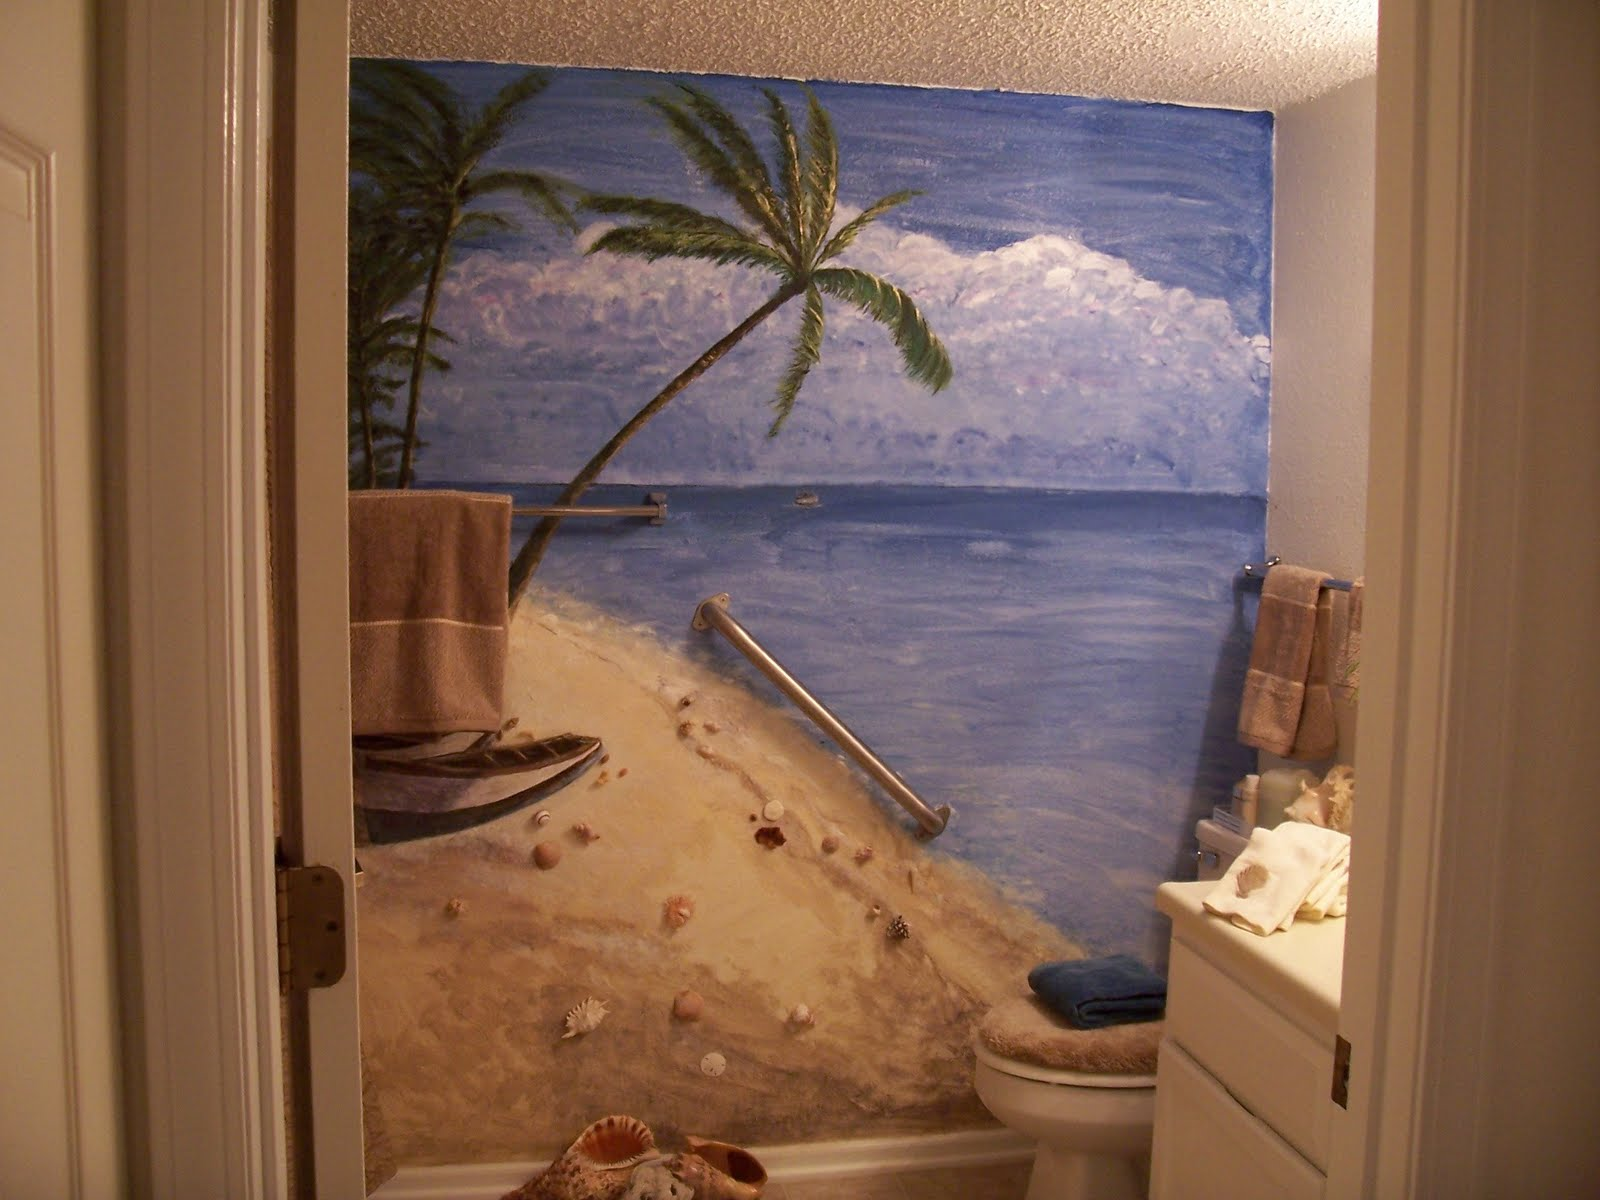 Beach Bathroom Decor: Exploring Danish Design: Furniture Design